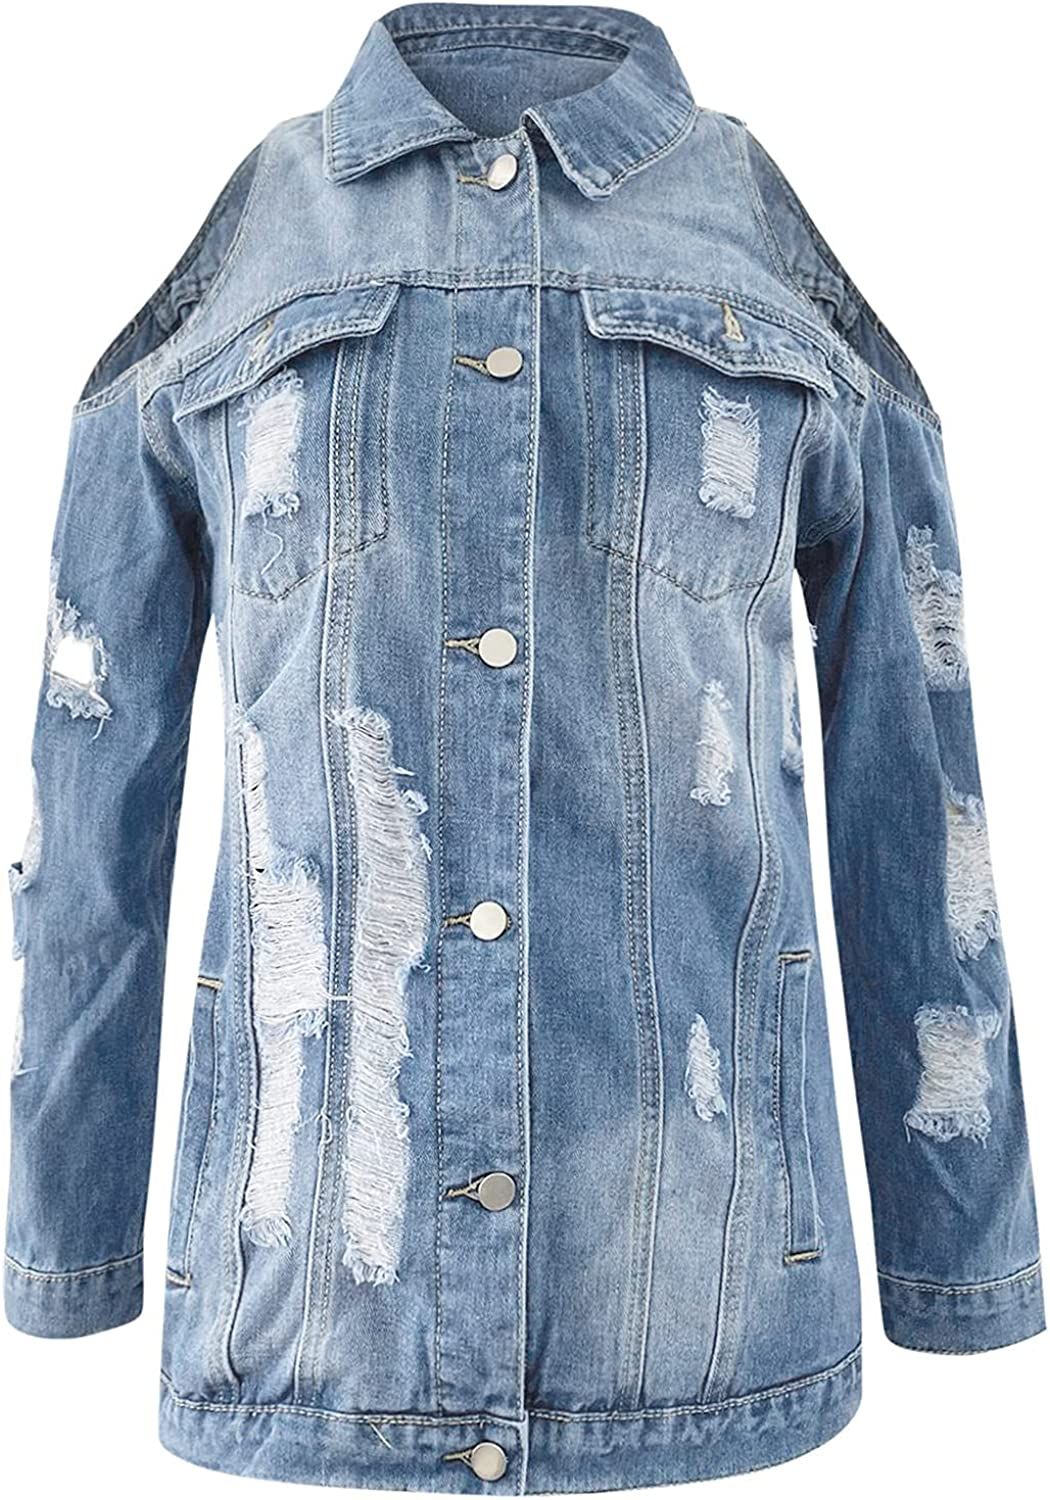 Women's Sexy Cold Shoulder Jean Jacket - Long Sleeve Button Up Jean Coat Ripped Denim Trucker Jackets with Pockets